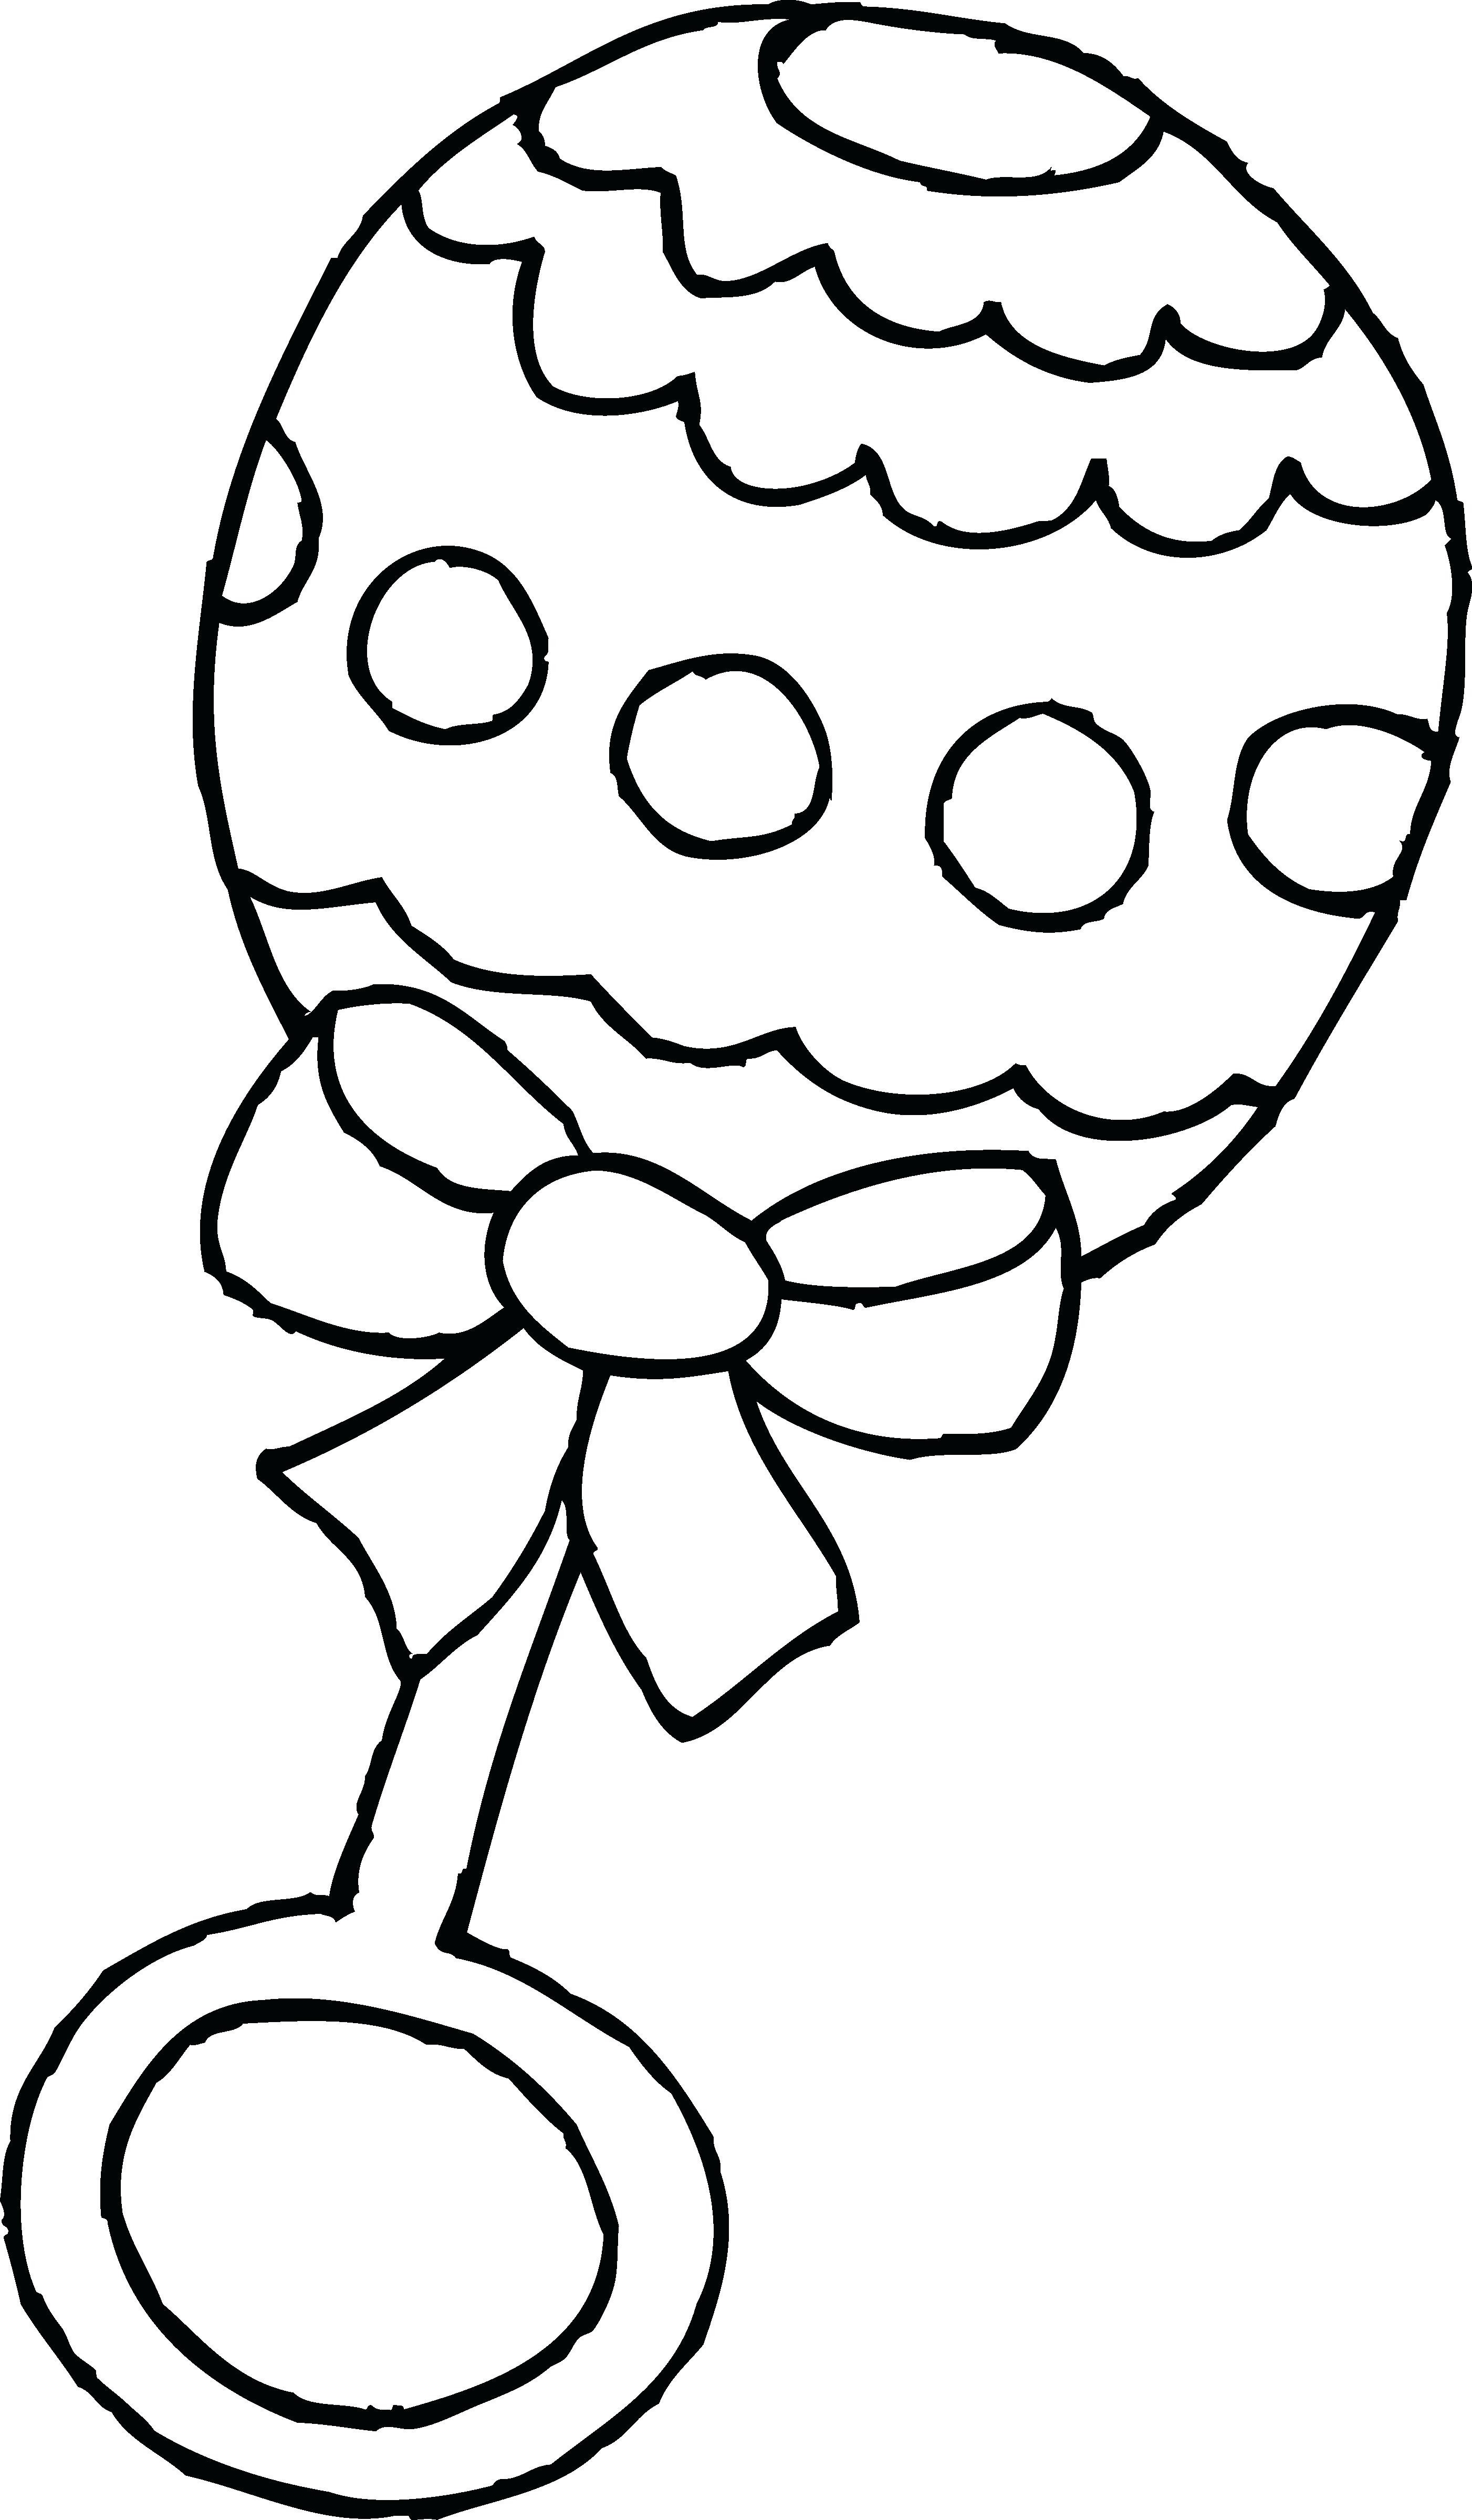 Coloring Pages: Baby Shower Coloring Print Free Printable For Kids - Free Printable Baby Shower Coloring Pages